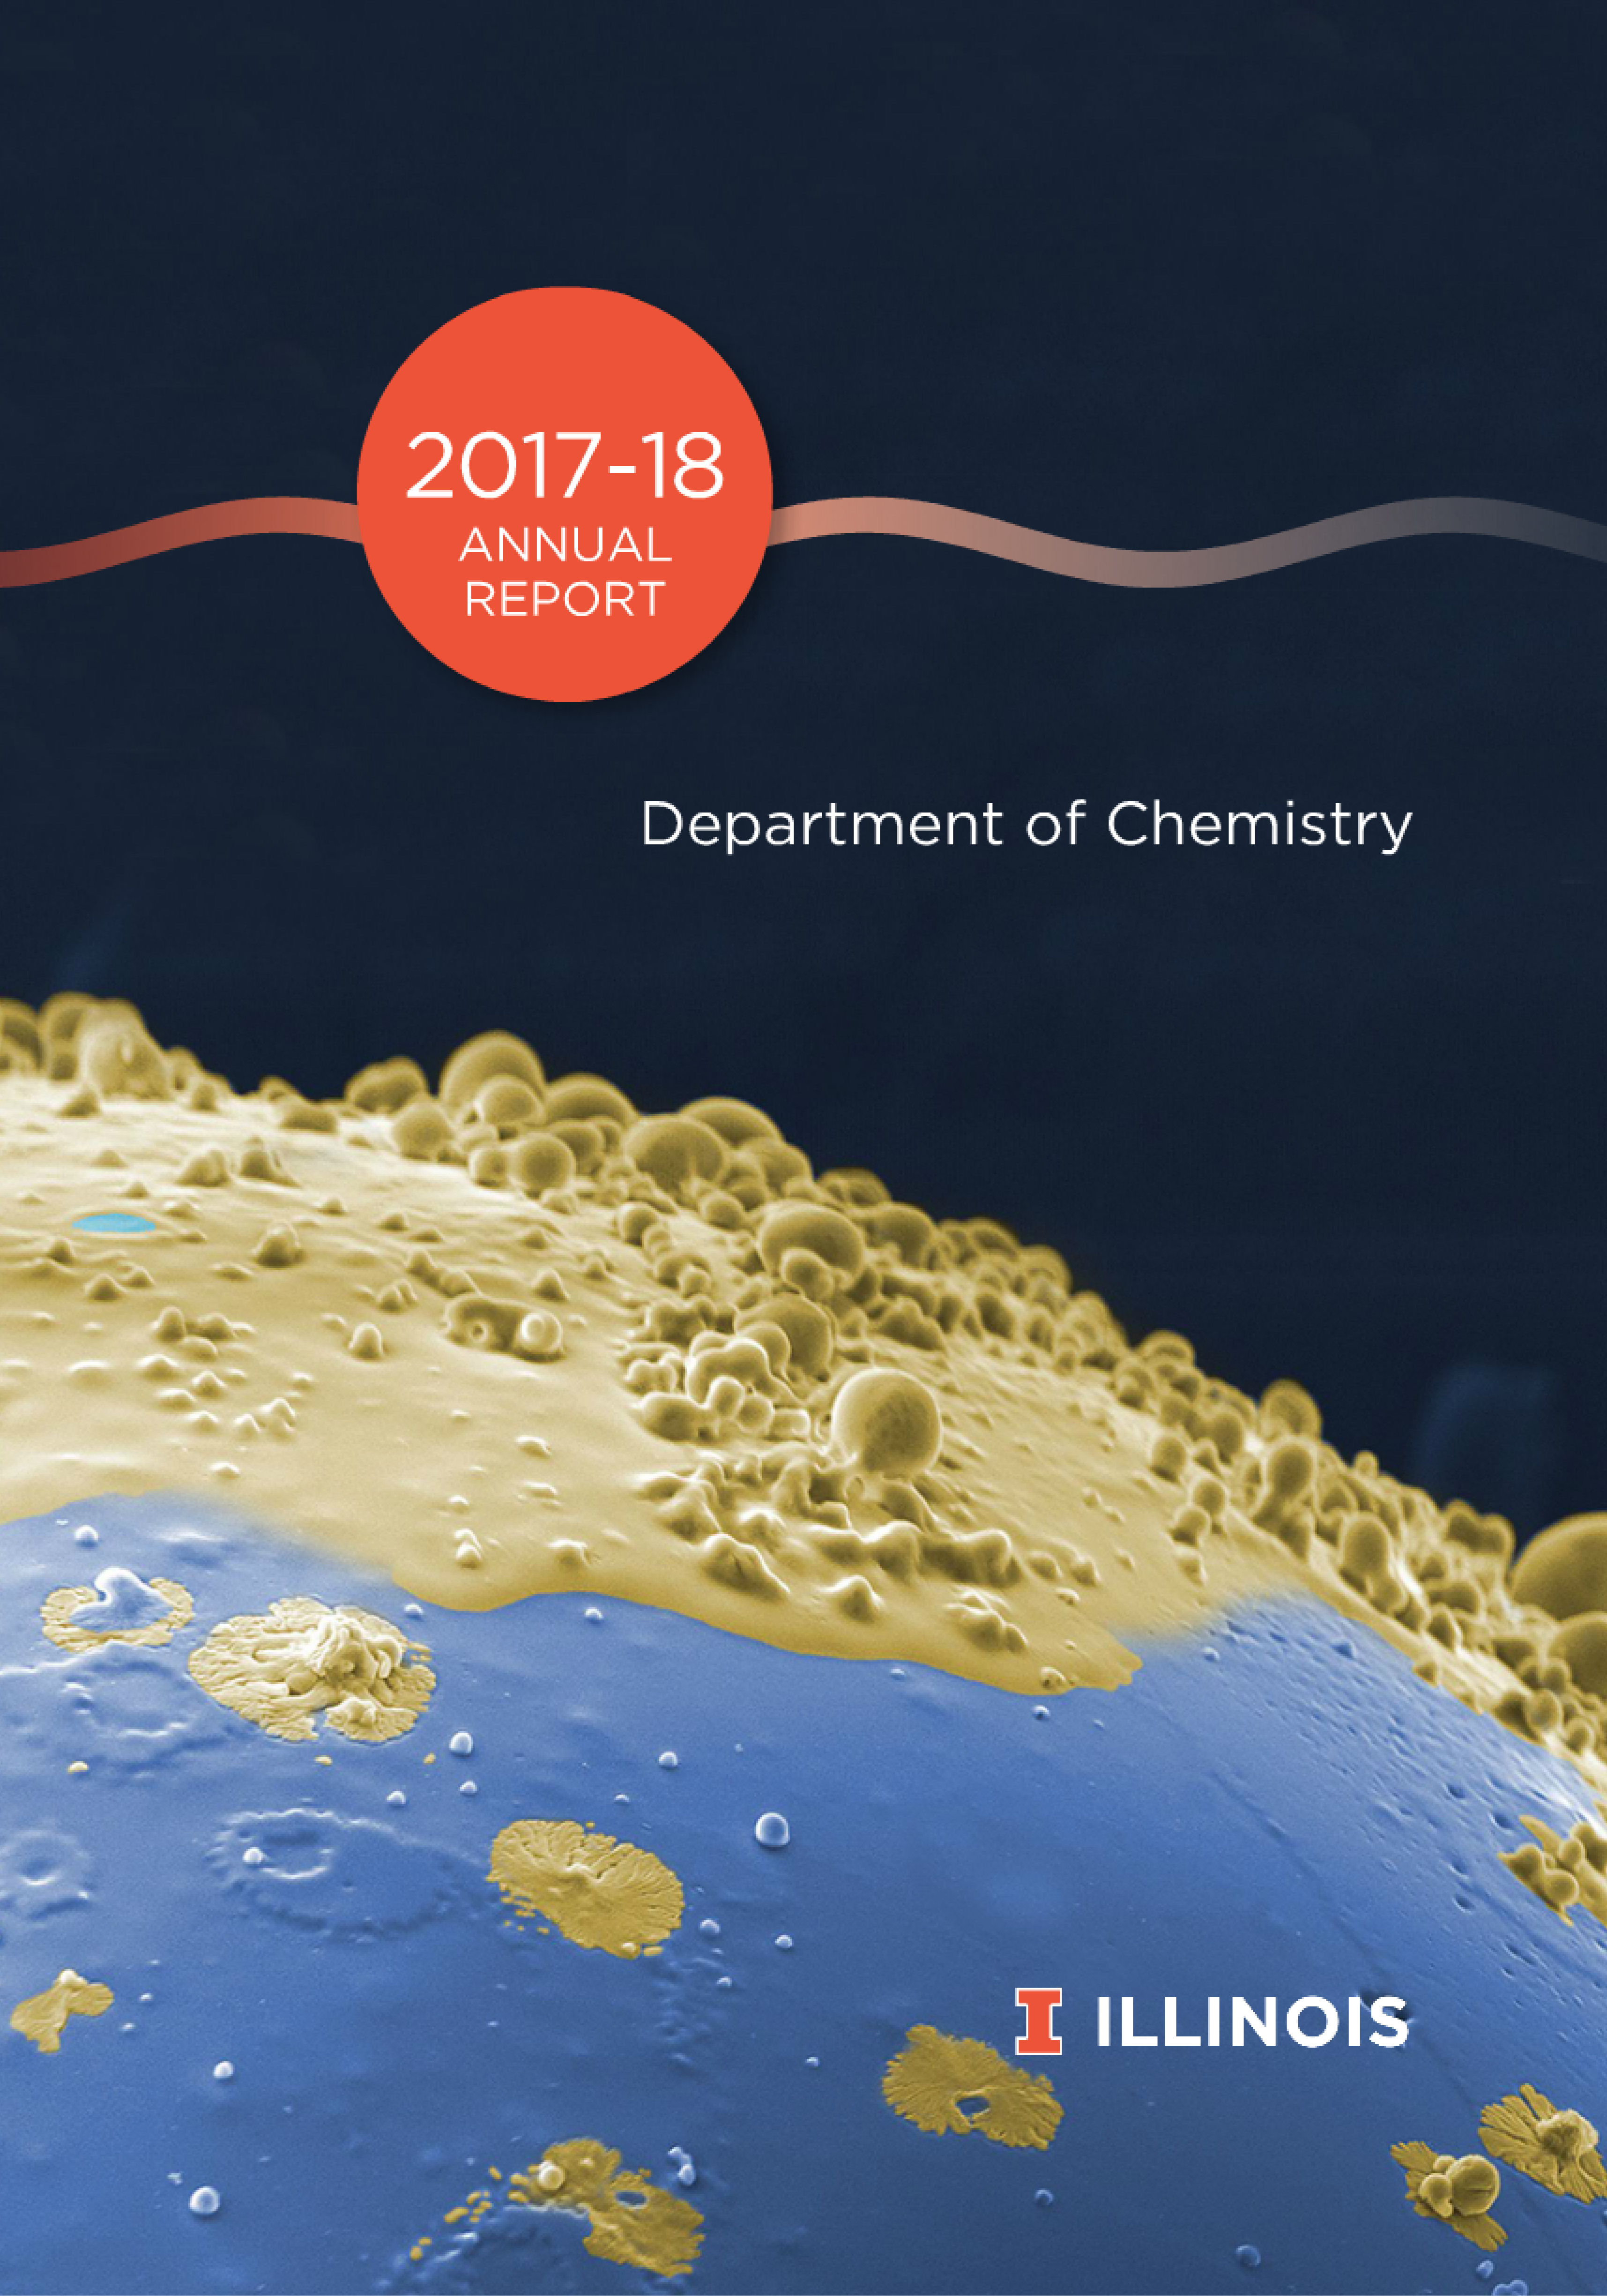 2017-18 Annual Report for the Department of Chemistry cover